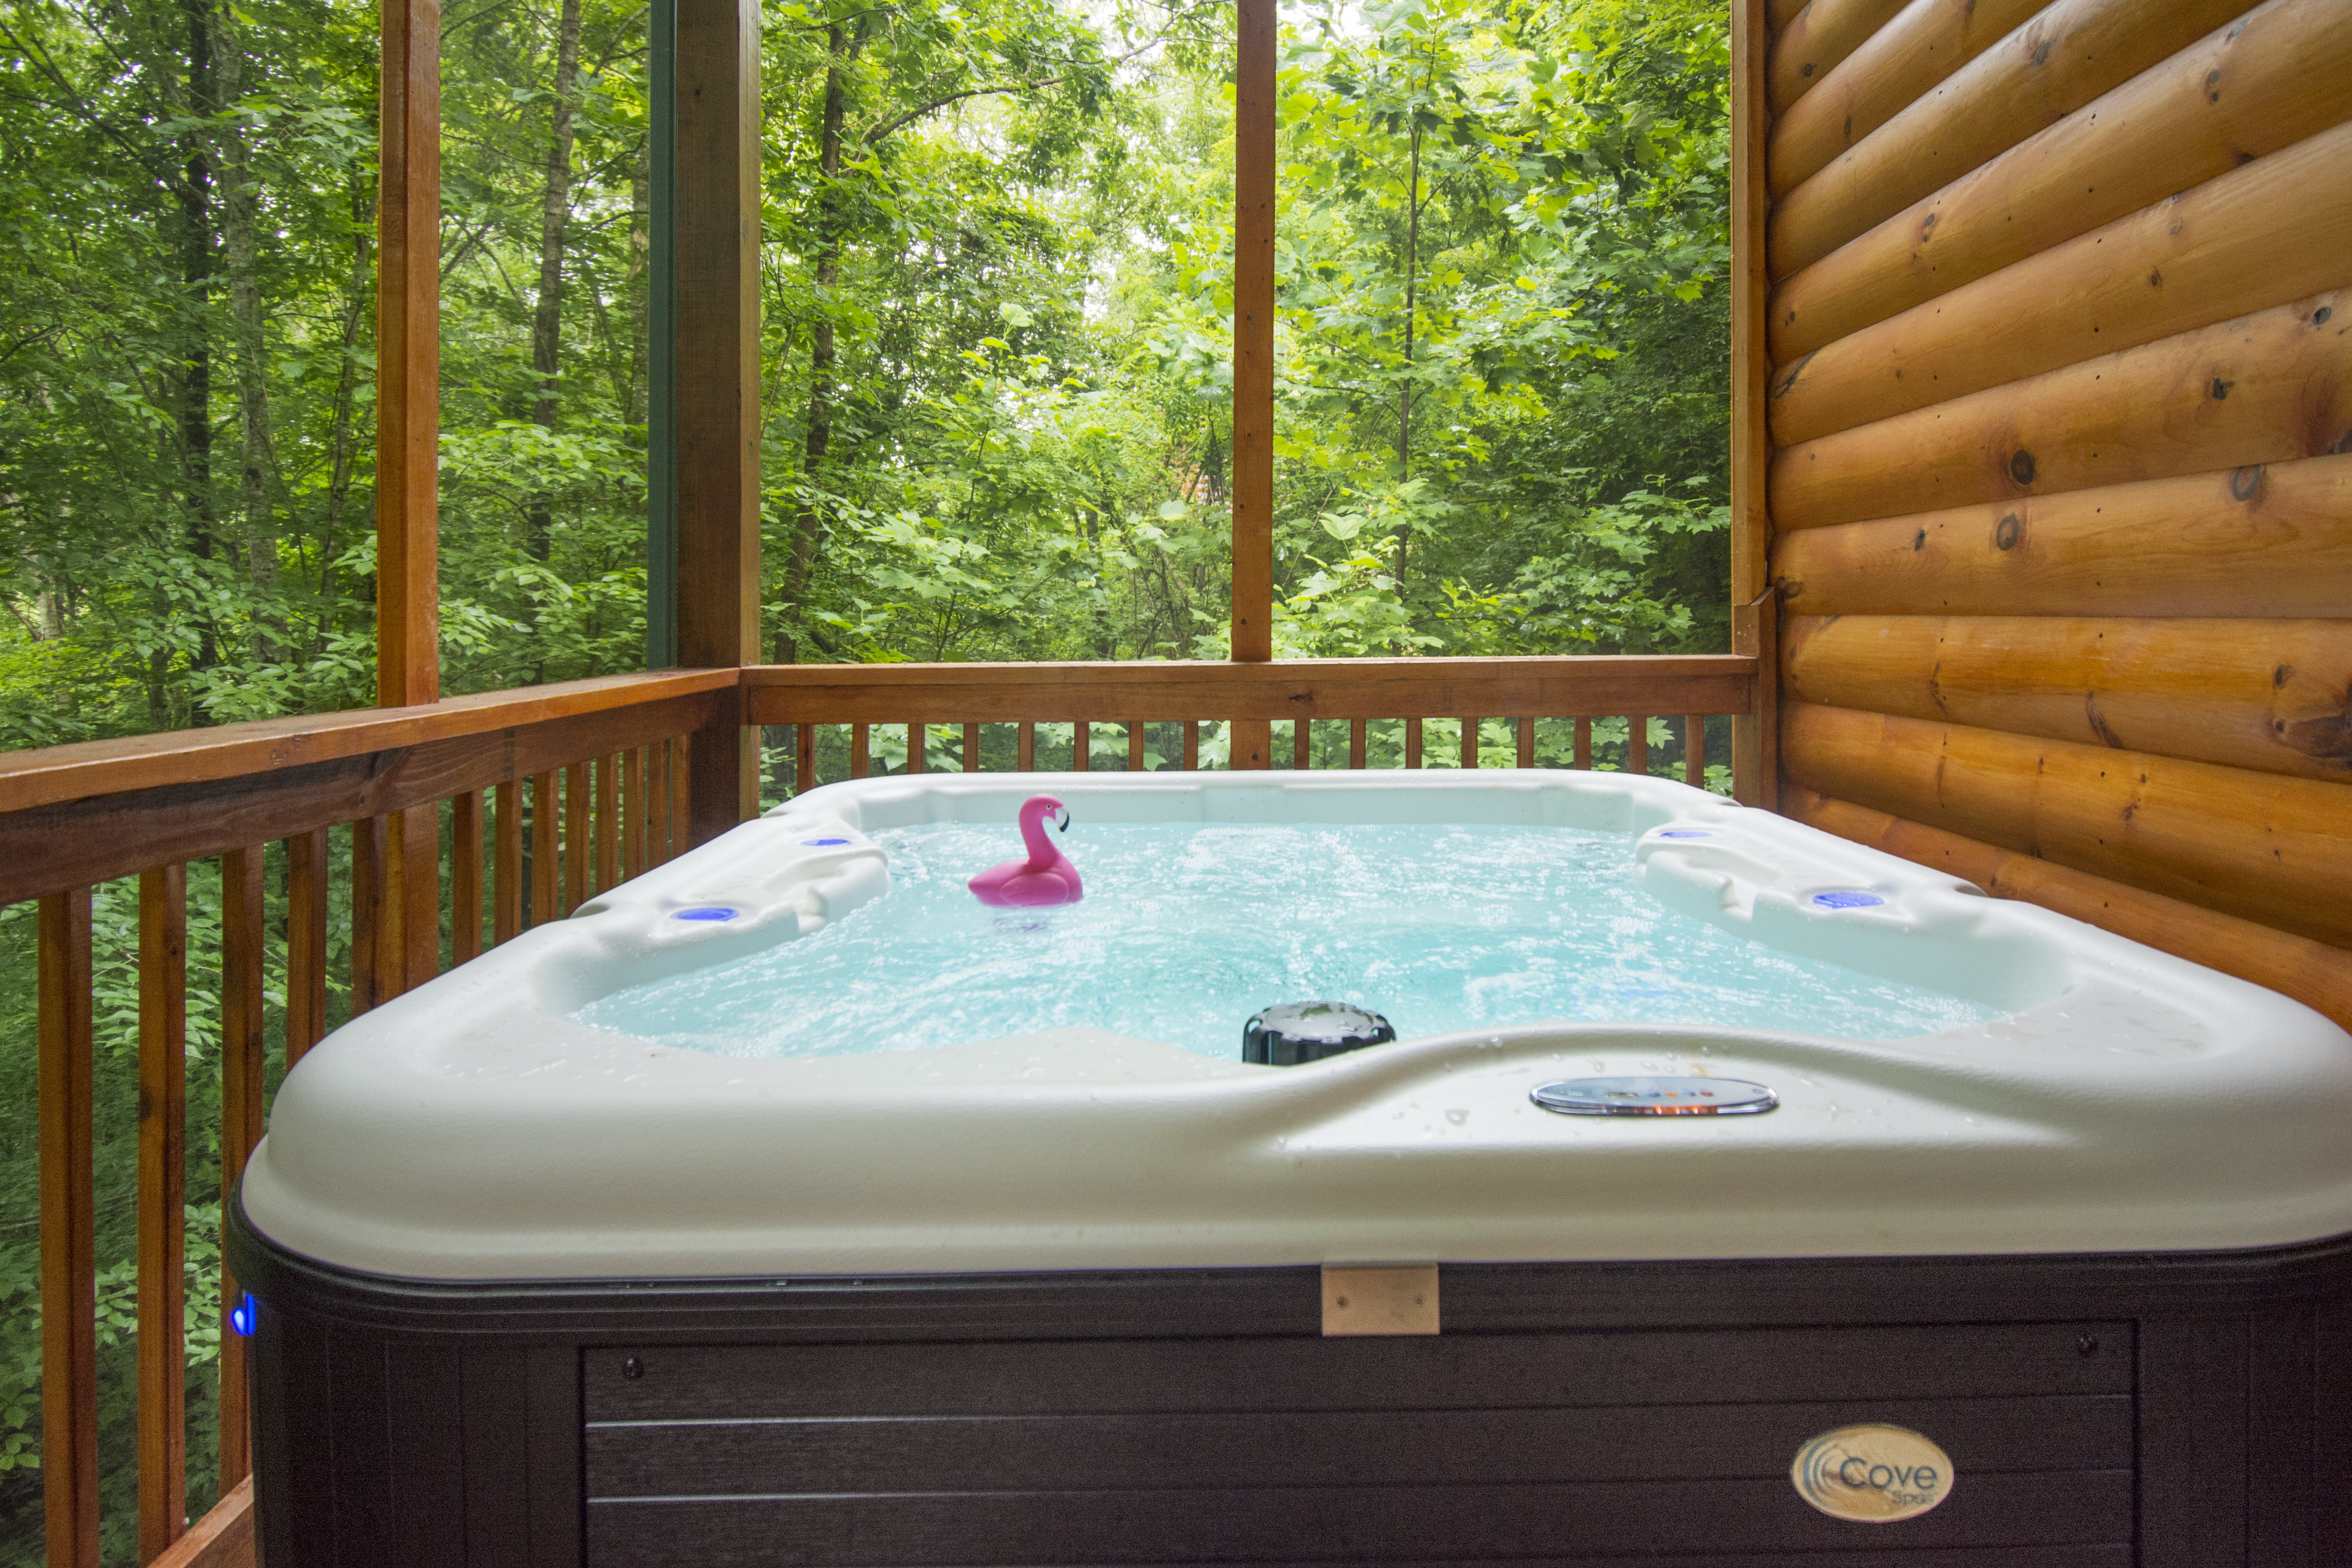 Stay Minty Cabins in the smoky mountains.